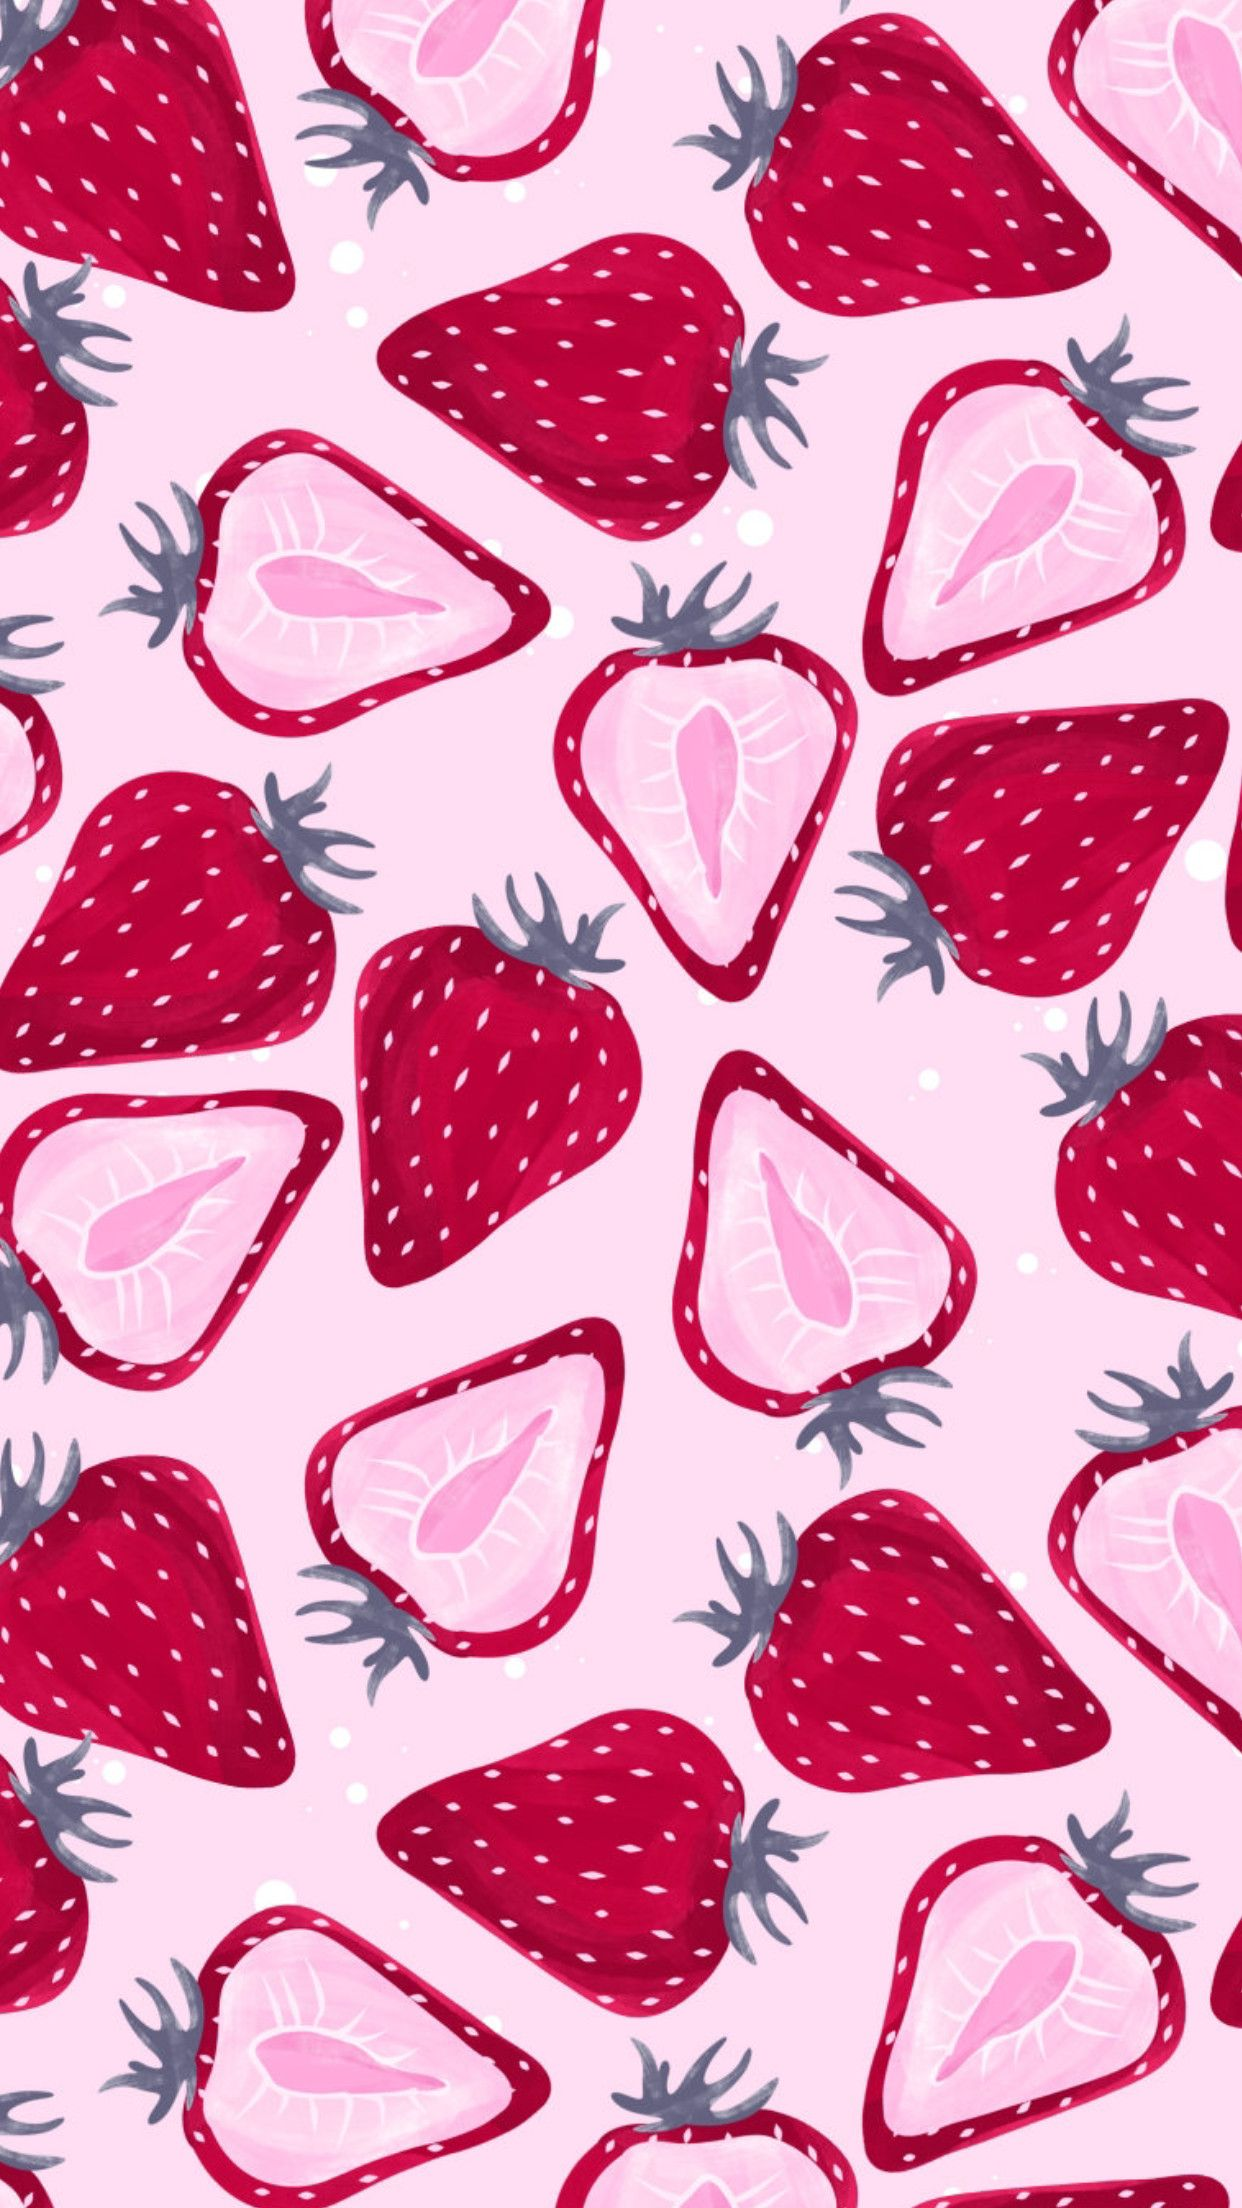 Kawaii Strawberry Wallpapers - Top Free ...